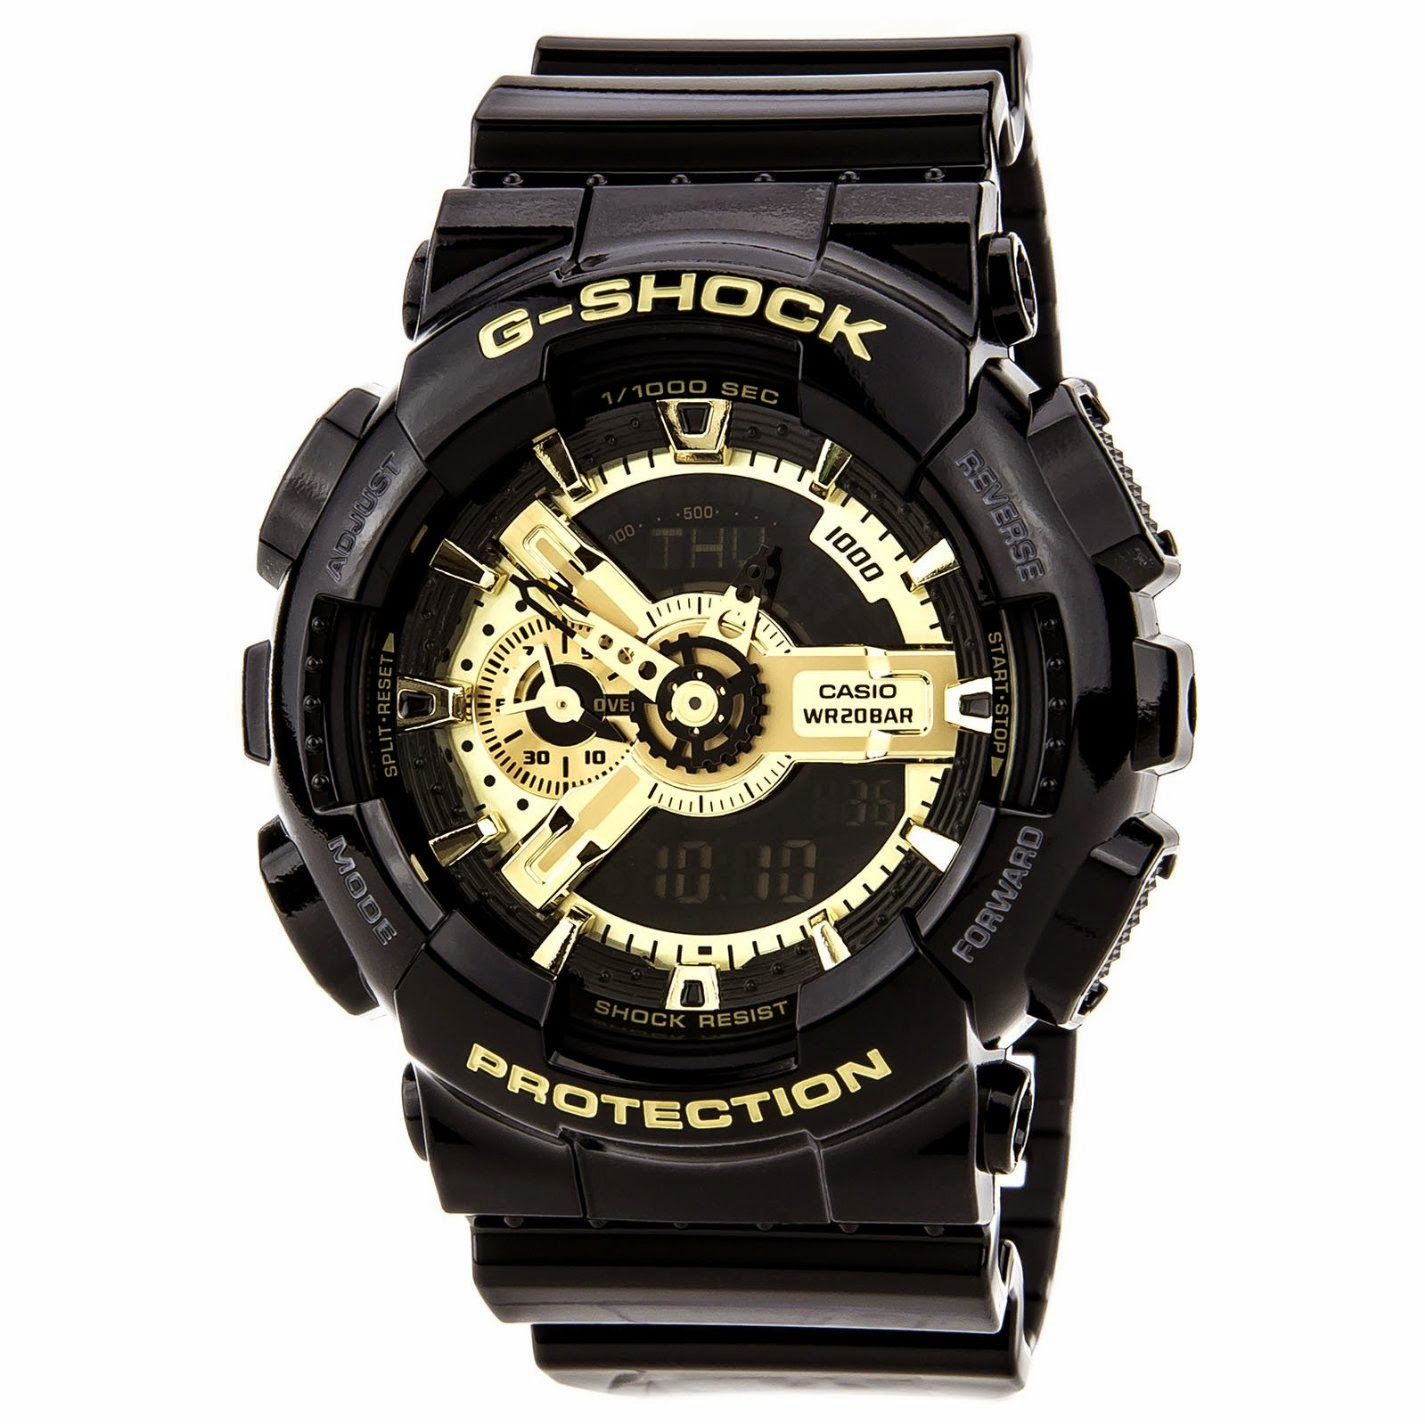 Casual best casio watch reviews g shock top black watches for men timepiece collection for Watches g shock